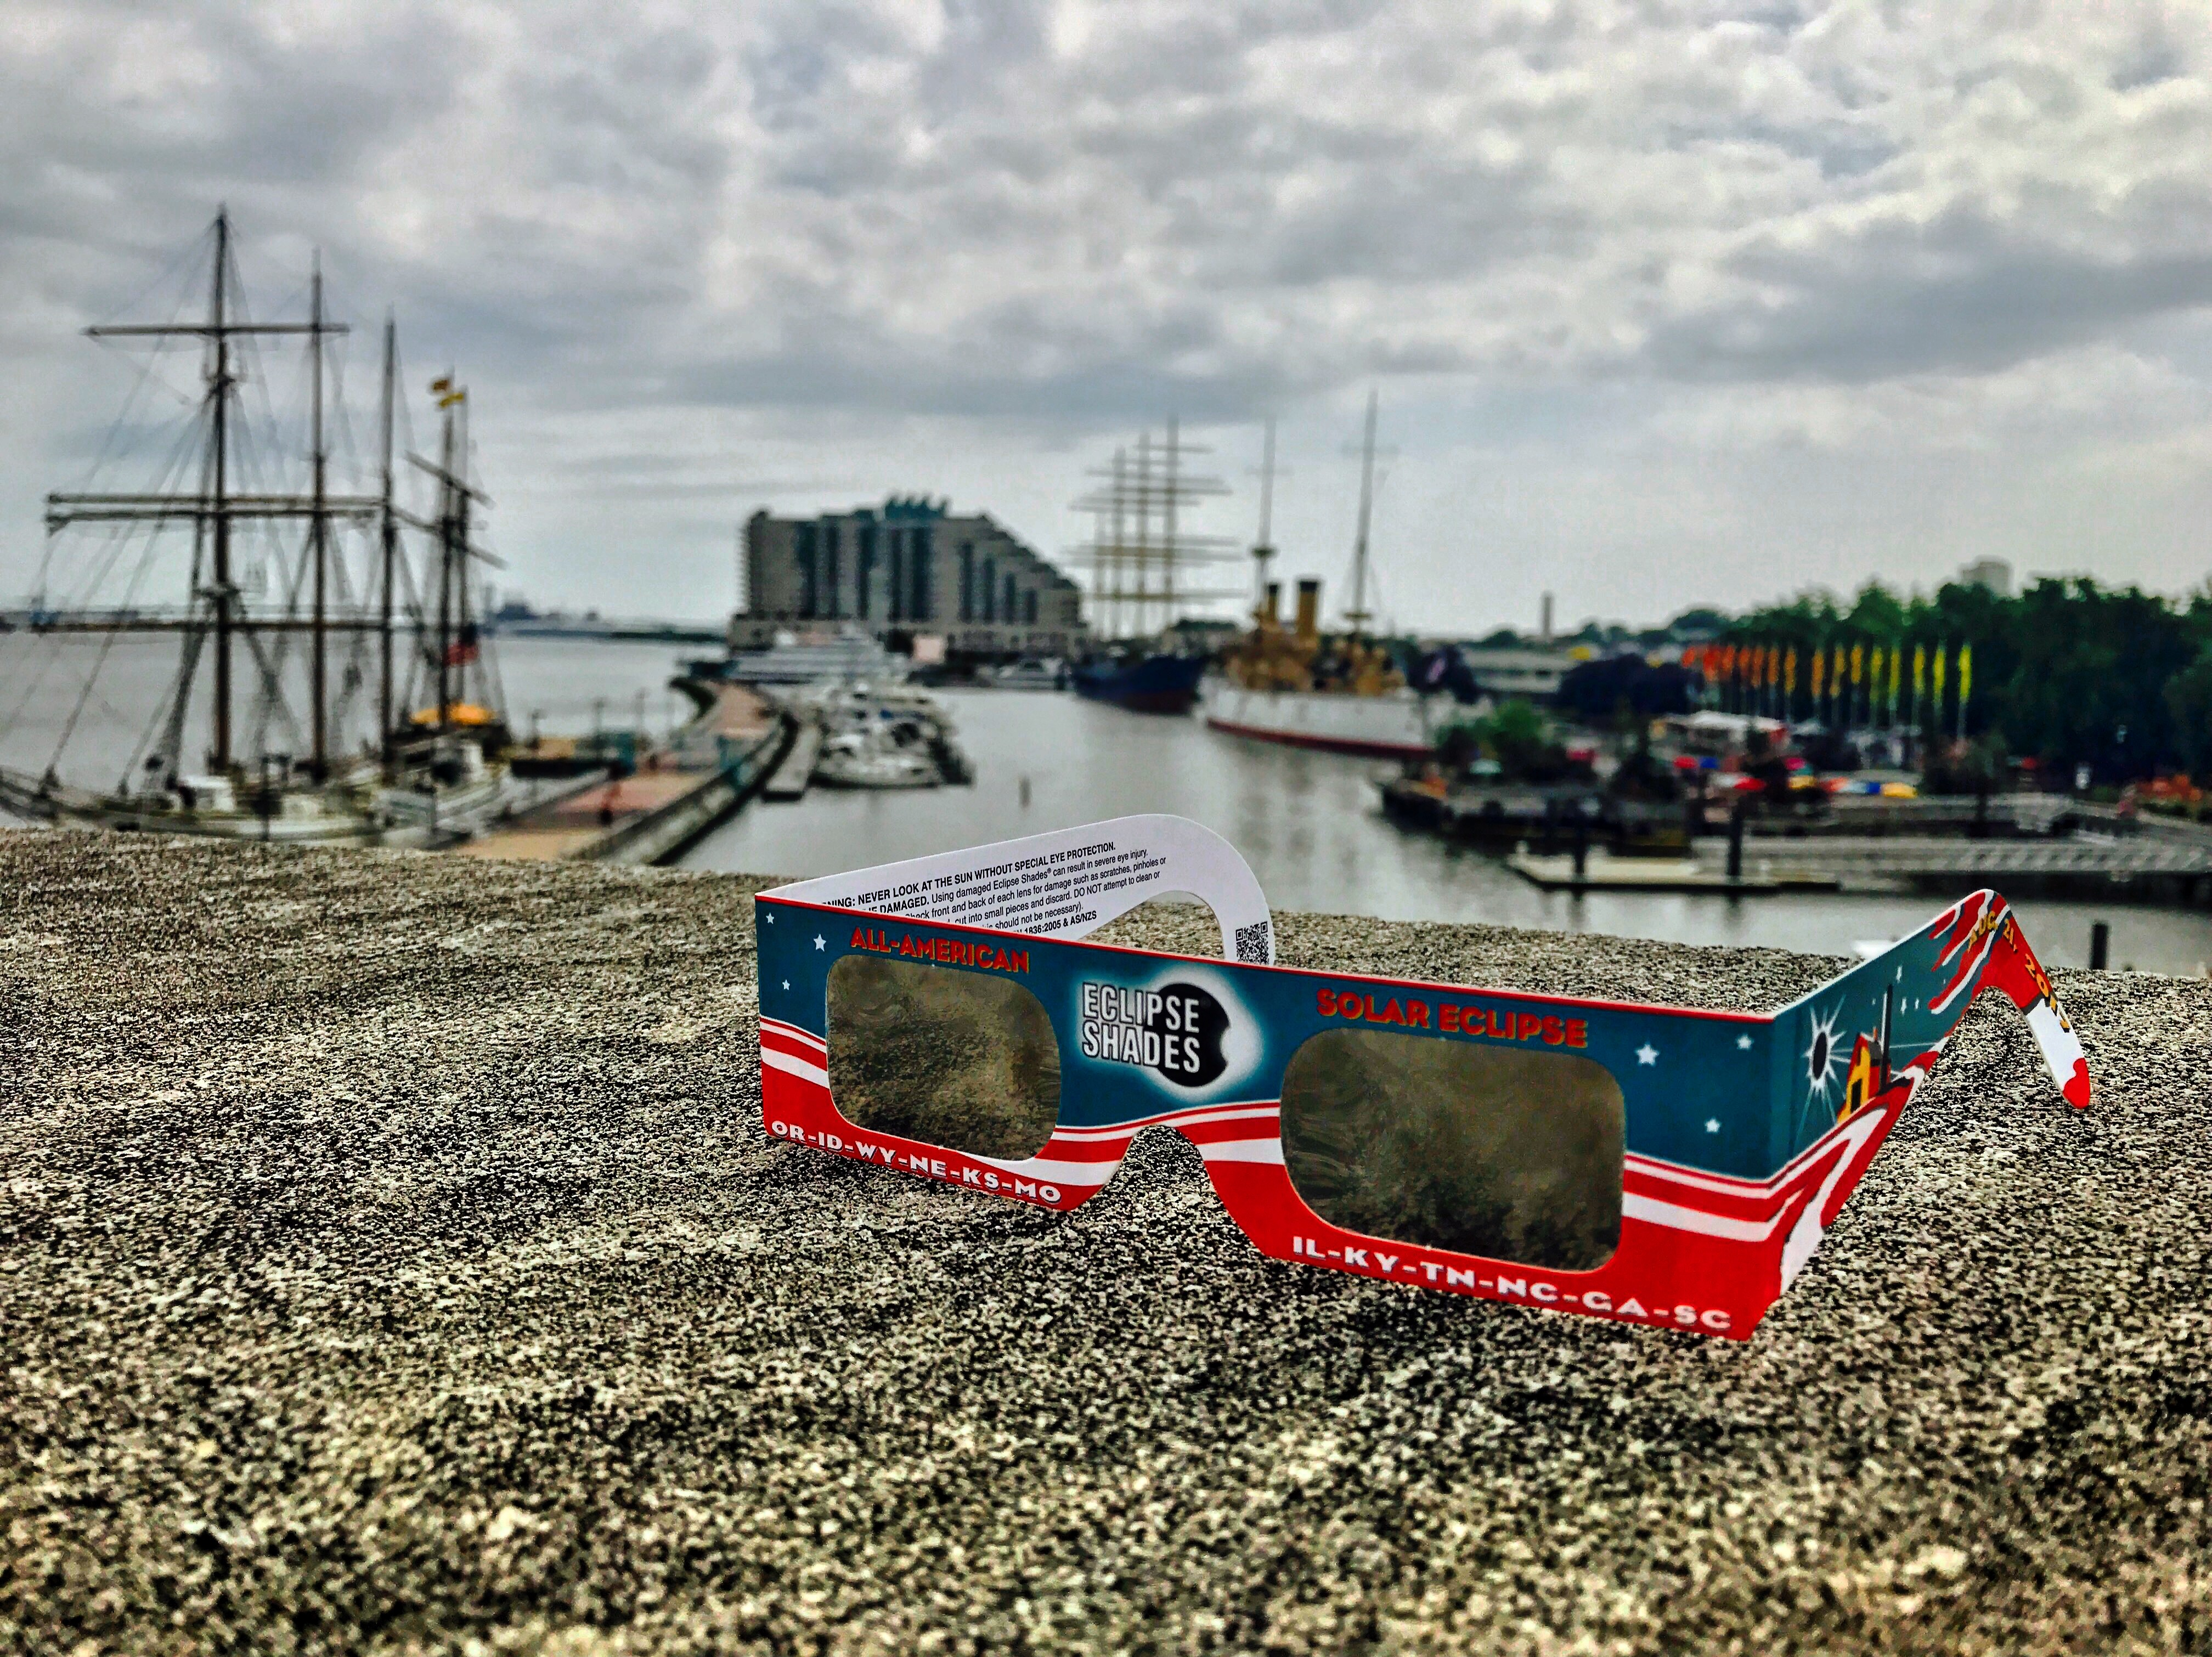 Solar Eclipse Shades, courtesy of The Independence Seaport Museum. Photo taken by Mónica Marie Zorrilla/AL DÍA News.